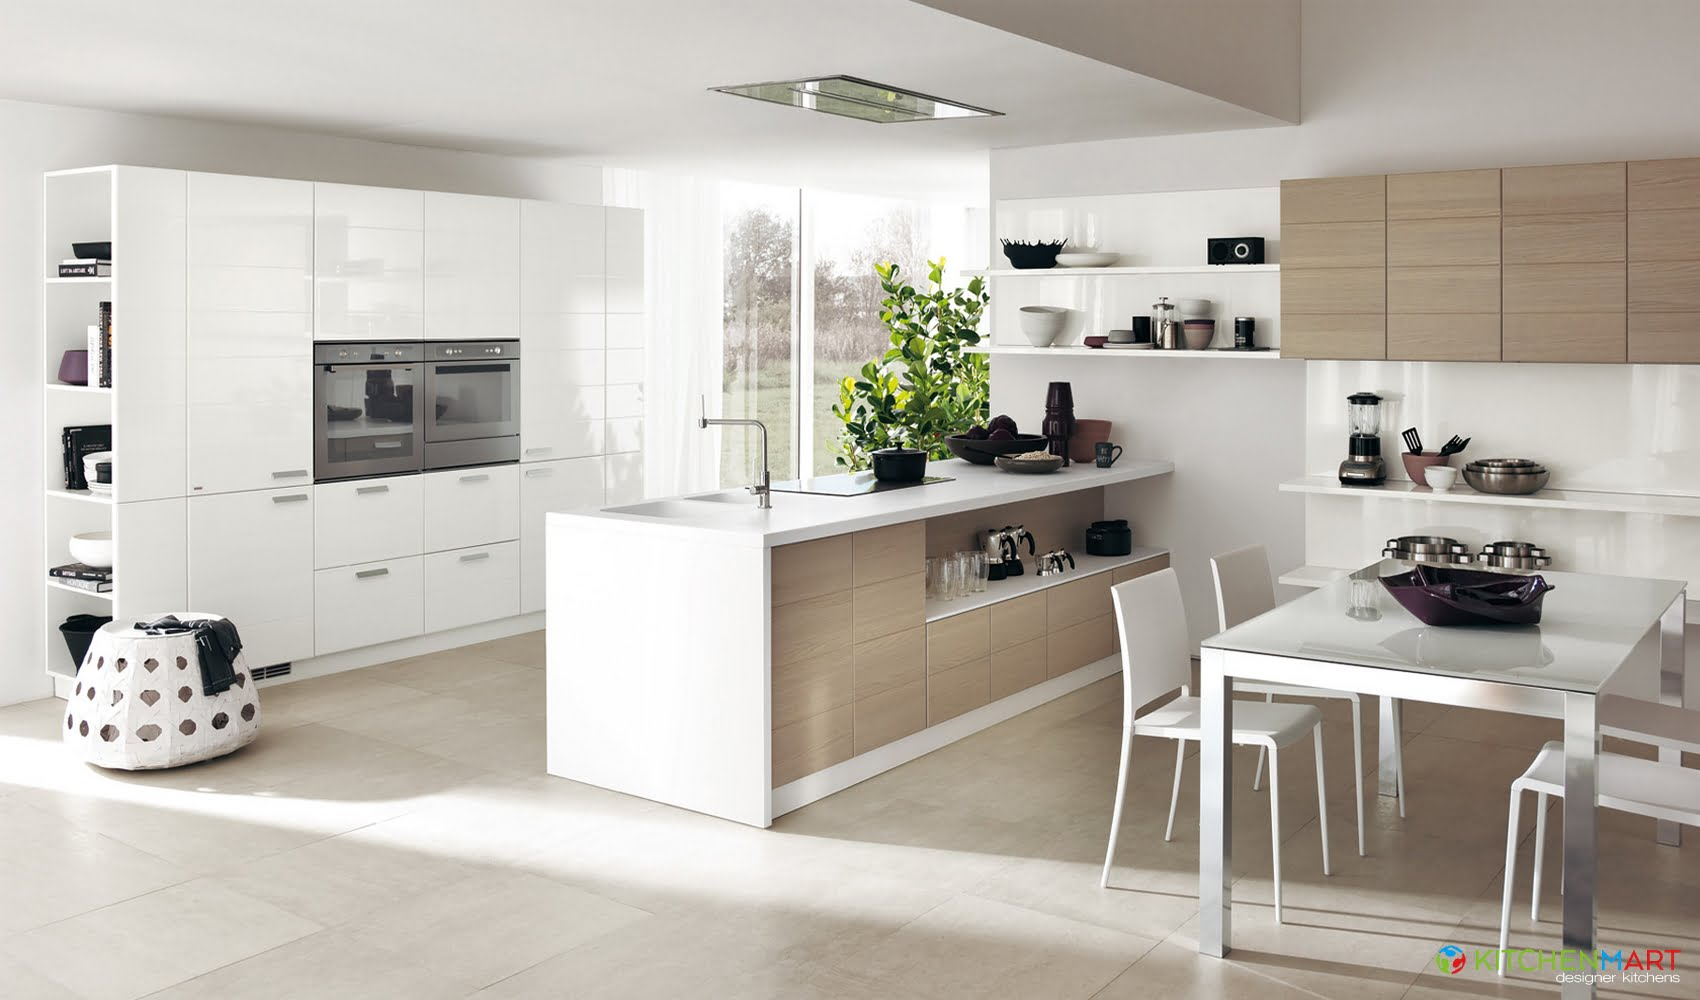 designer kitchens melbourne classic kitchens melbourne kitchen mart 763